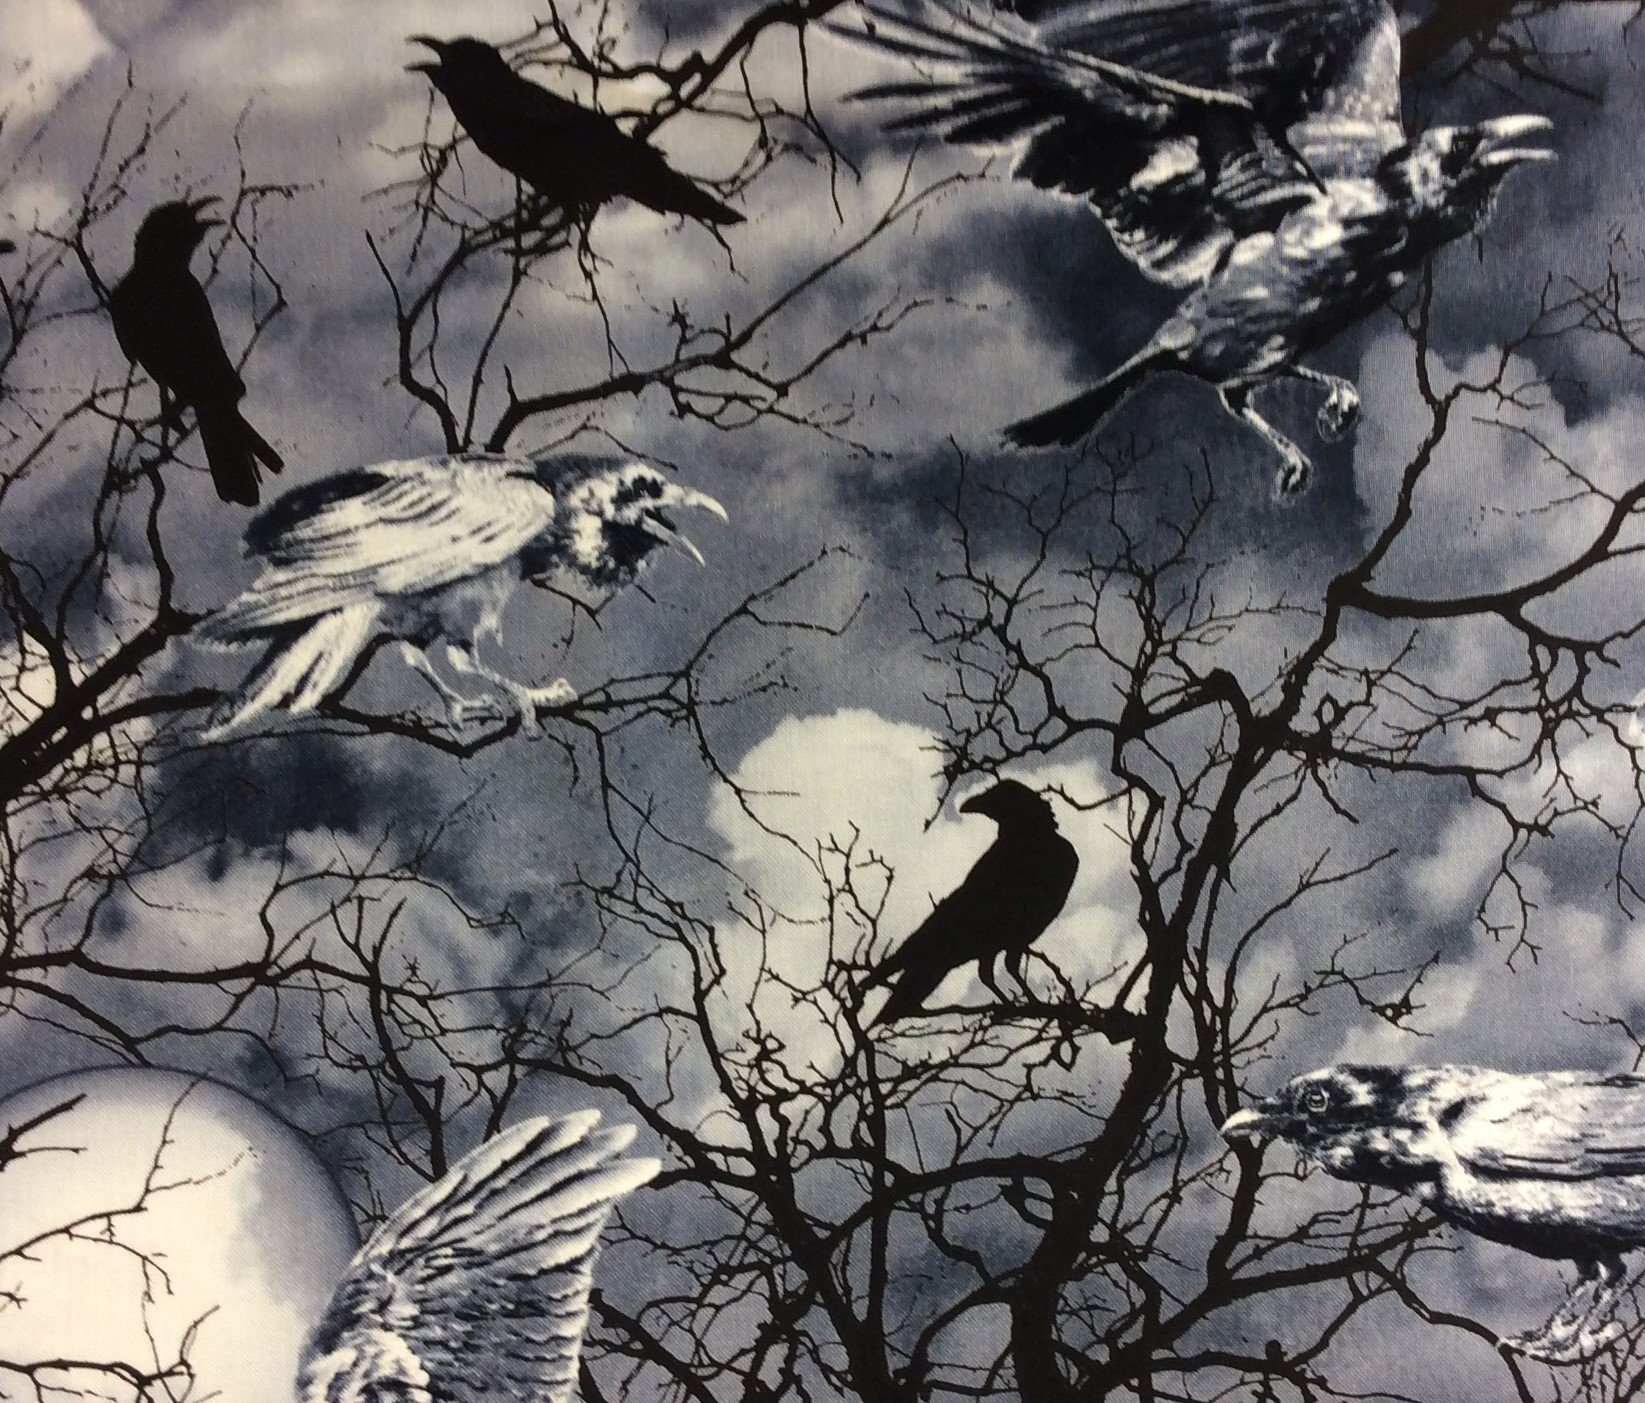 Goth Horror Crows Halloween Night Woods Creepy Scary Spooky Tree Cotton Quilt  Fabric TT73